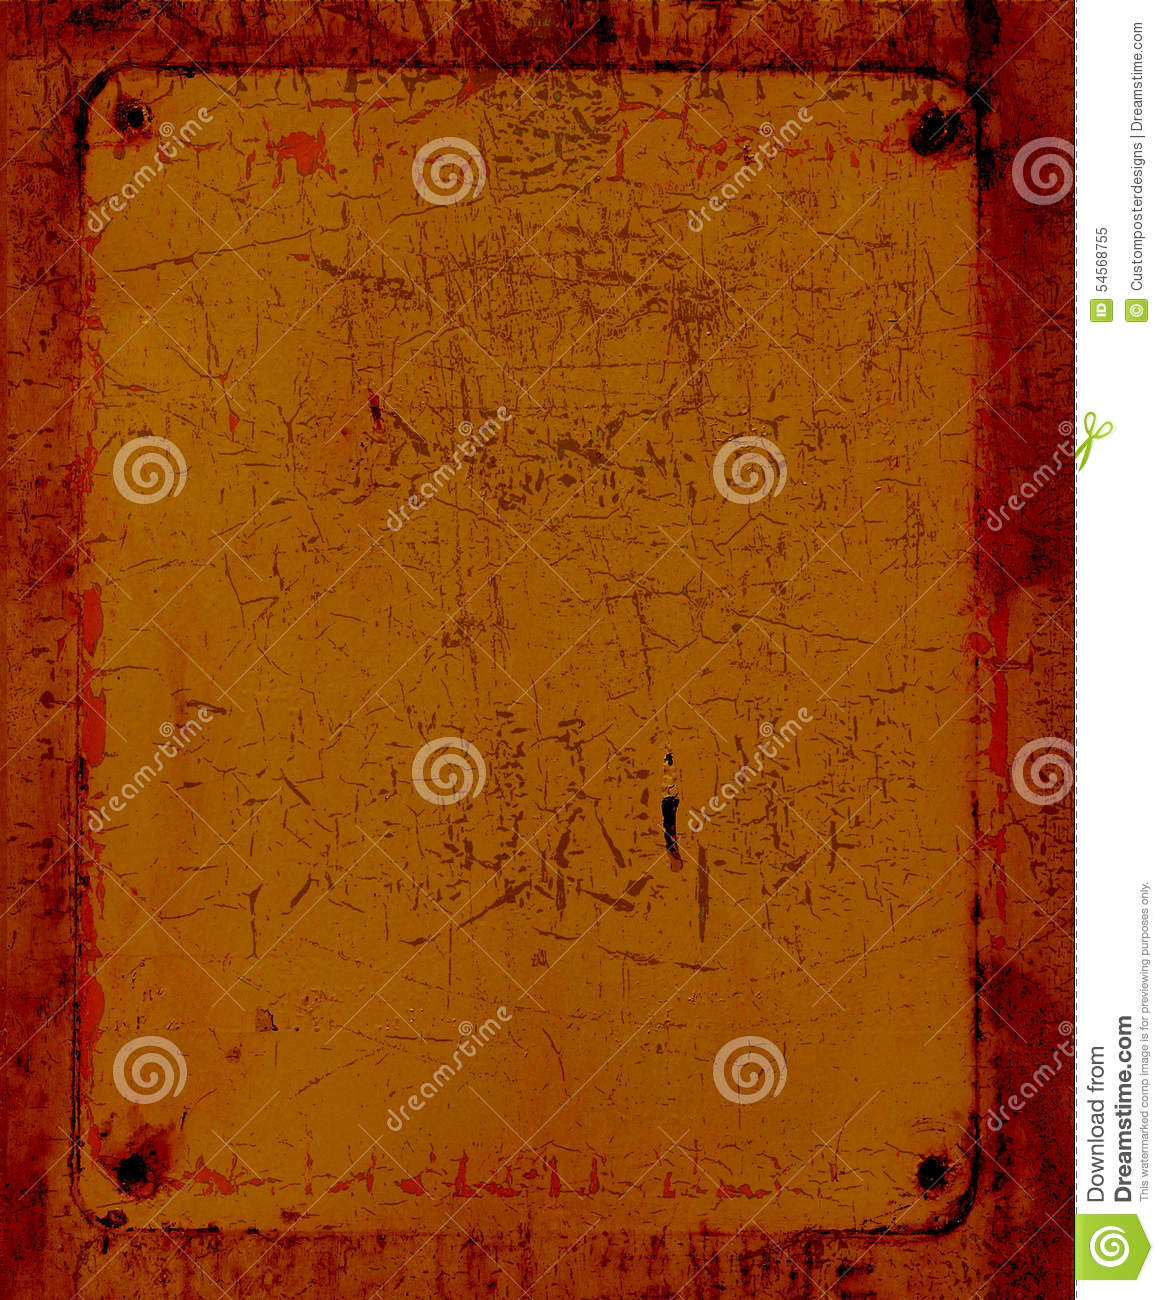 Download An Orange Metal Grunge Texture. Stock Image - Image of scratched, rough: 54568755